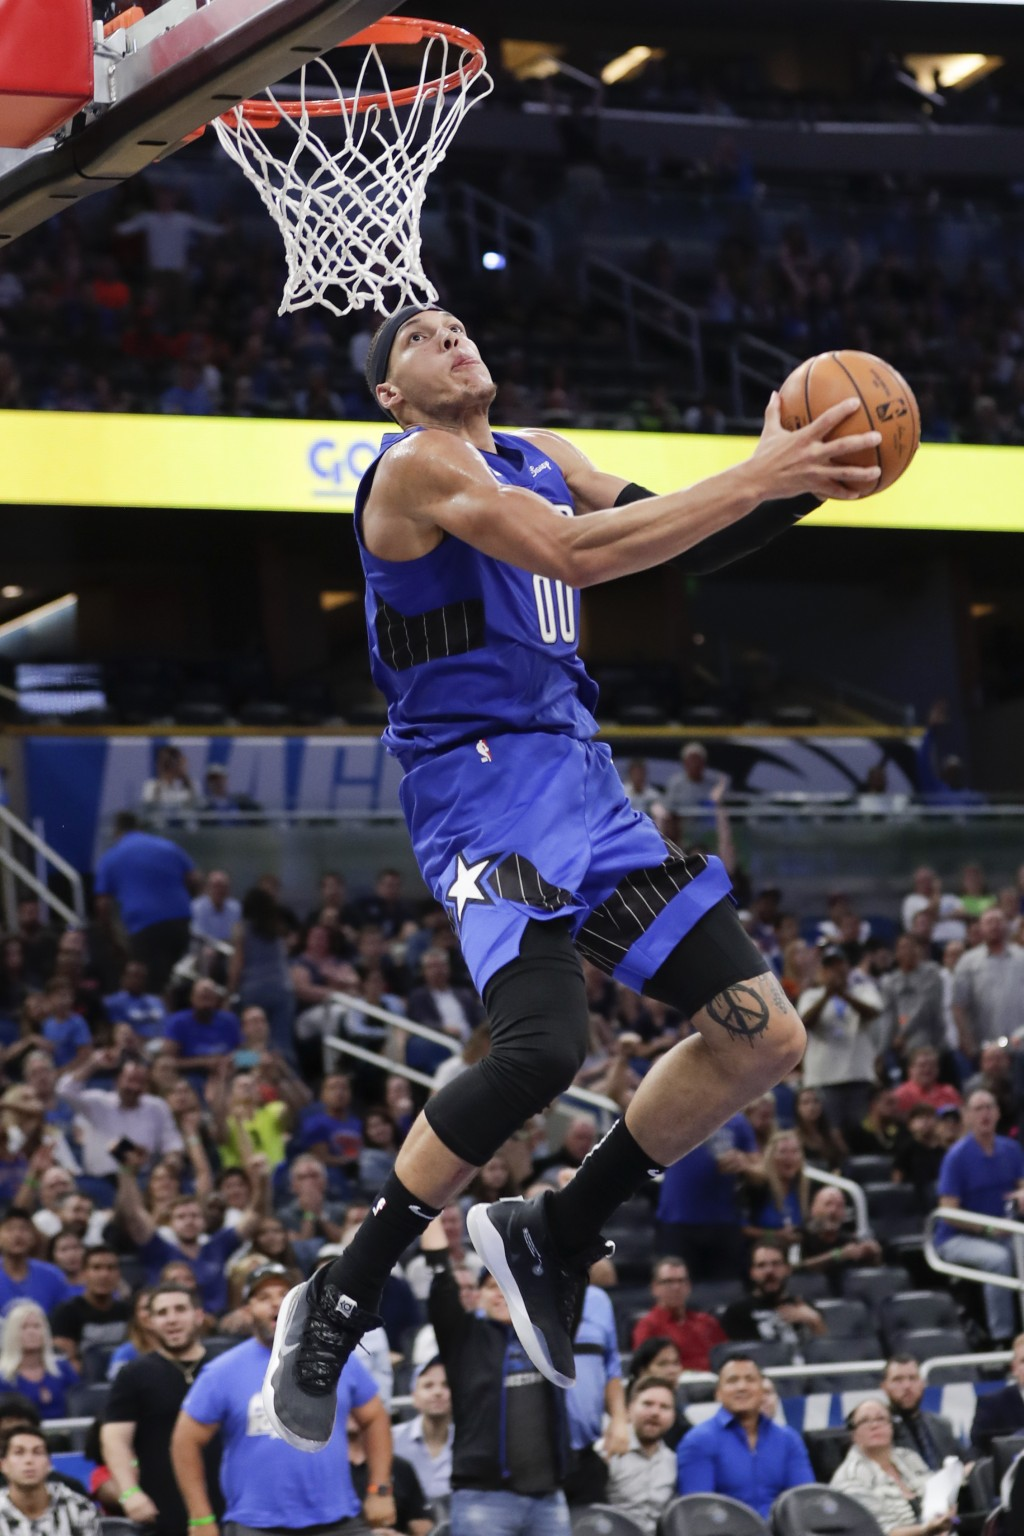 Orlando Magic's Aaron Gordon goes up for an uncontested dunk New York Knicks during the second half of an NBA basketball game, Wednesday, Oct. 30, 201...